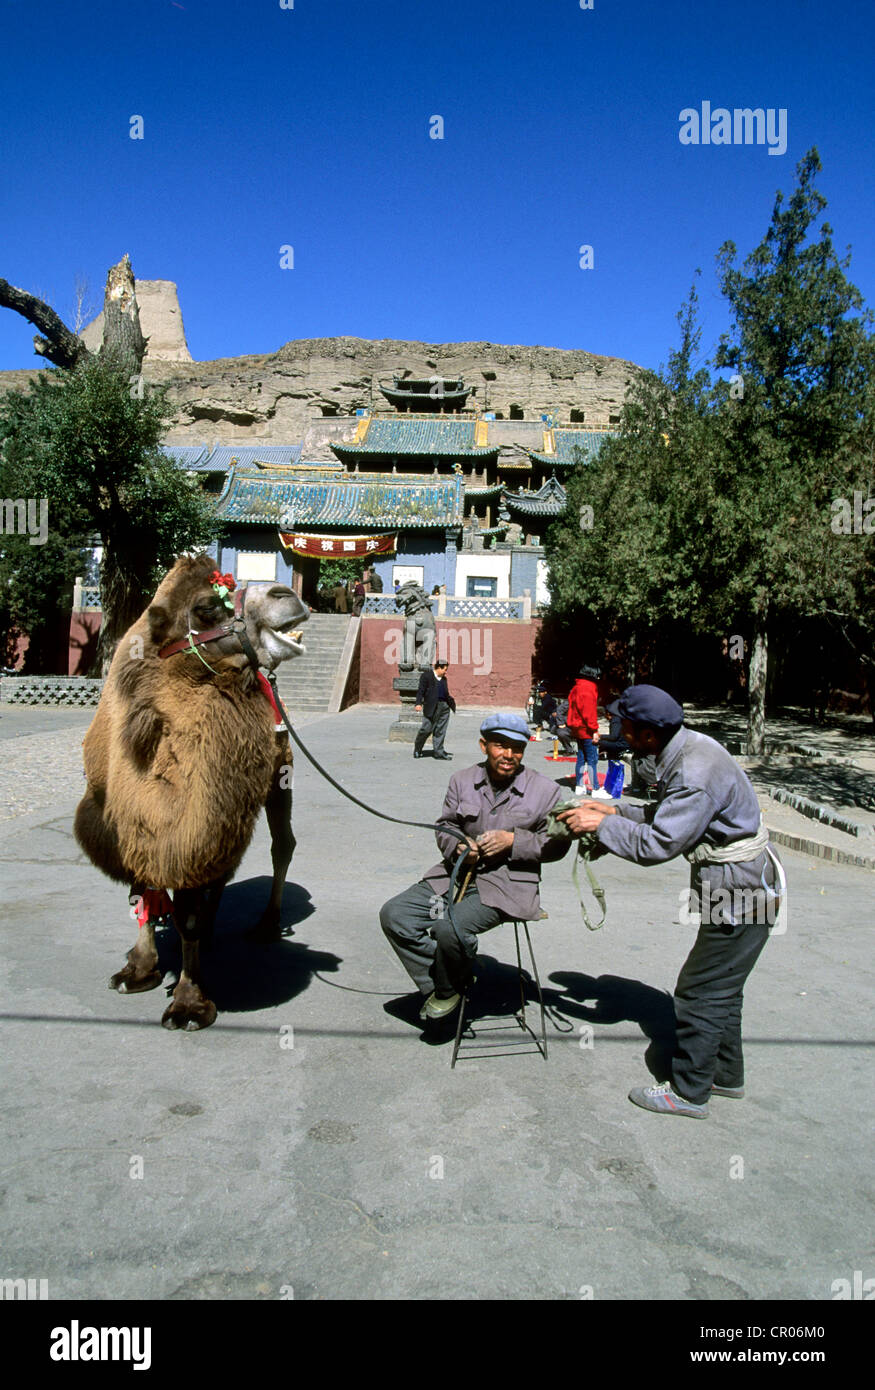 China Shanxi Province Datong Yungang Grottoes listed as World Heritage of UNESCO camel driver at entrance of grottoes - Stock Image